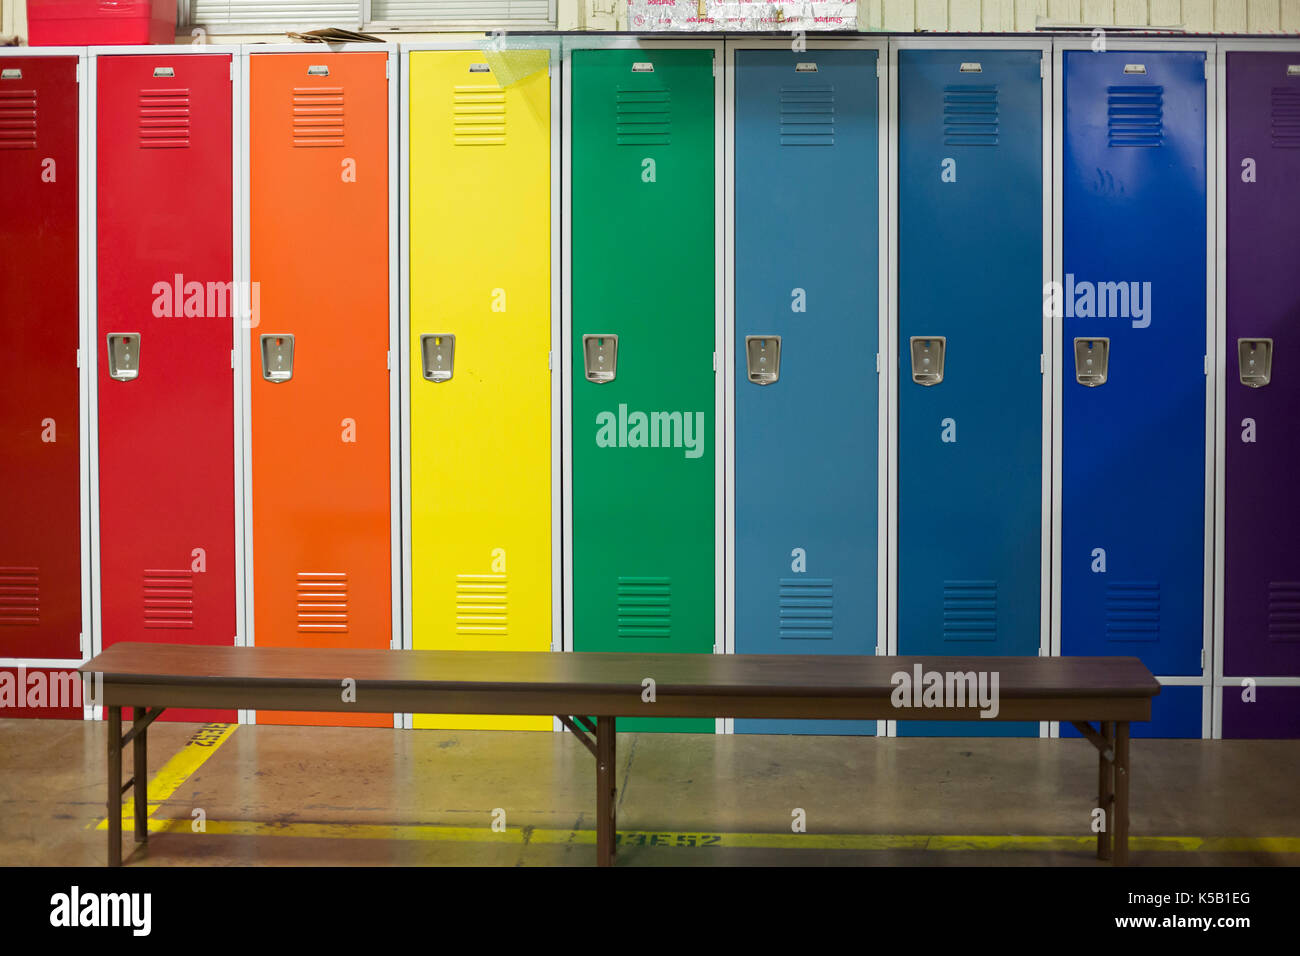 Denver, Colorado - Lockers in a rainbow of colors at the National Ice Core Laboratory. The lab stores 19,000 meters of ice cores from Antarctica, Gree - Stock Image